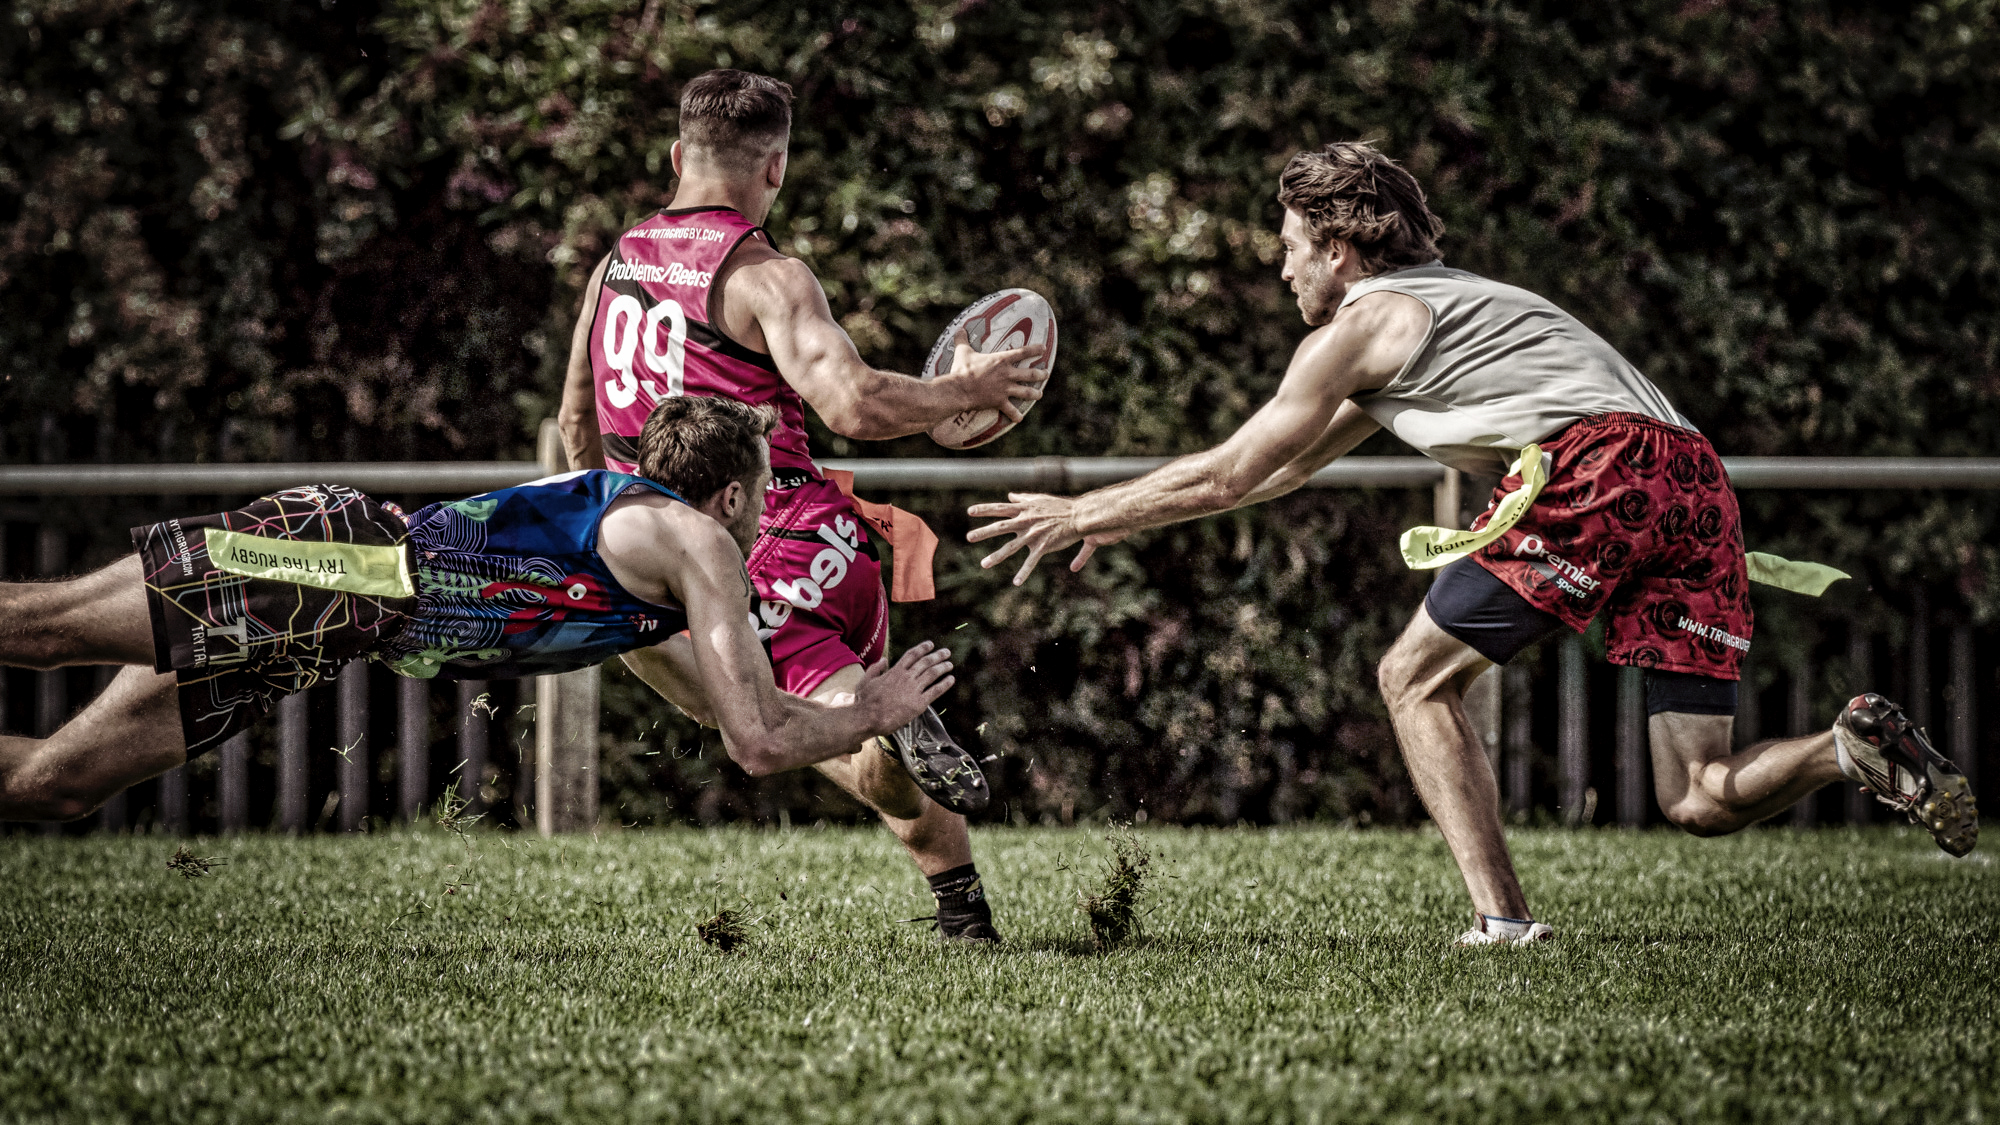 Shouldn't be a favourite sequence as the players are facing away from the camera but I love way the dirt's kicked up and the airborne tackler on the left. Player 99 went on to score.